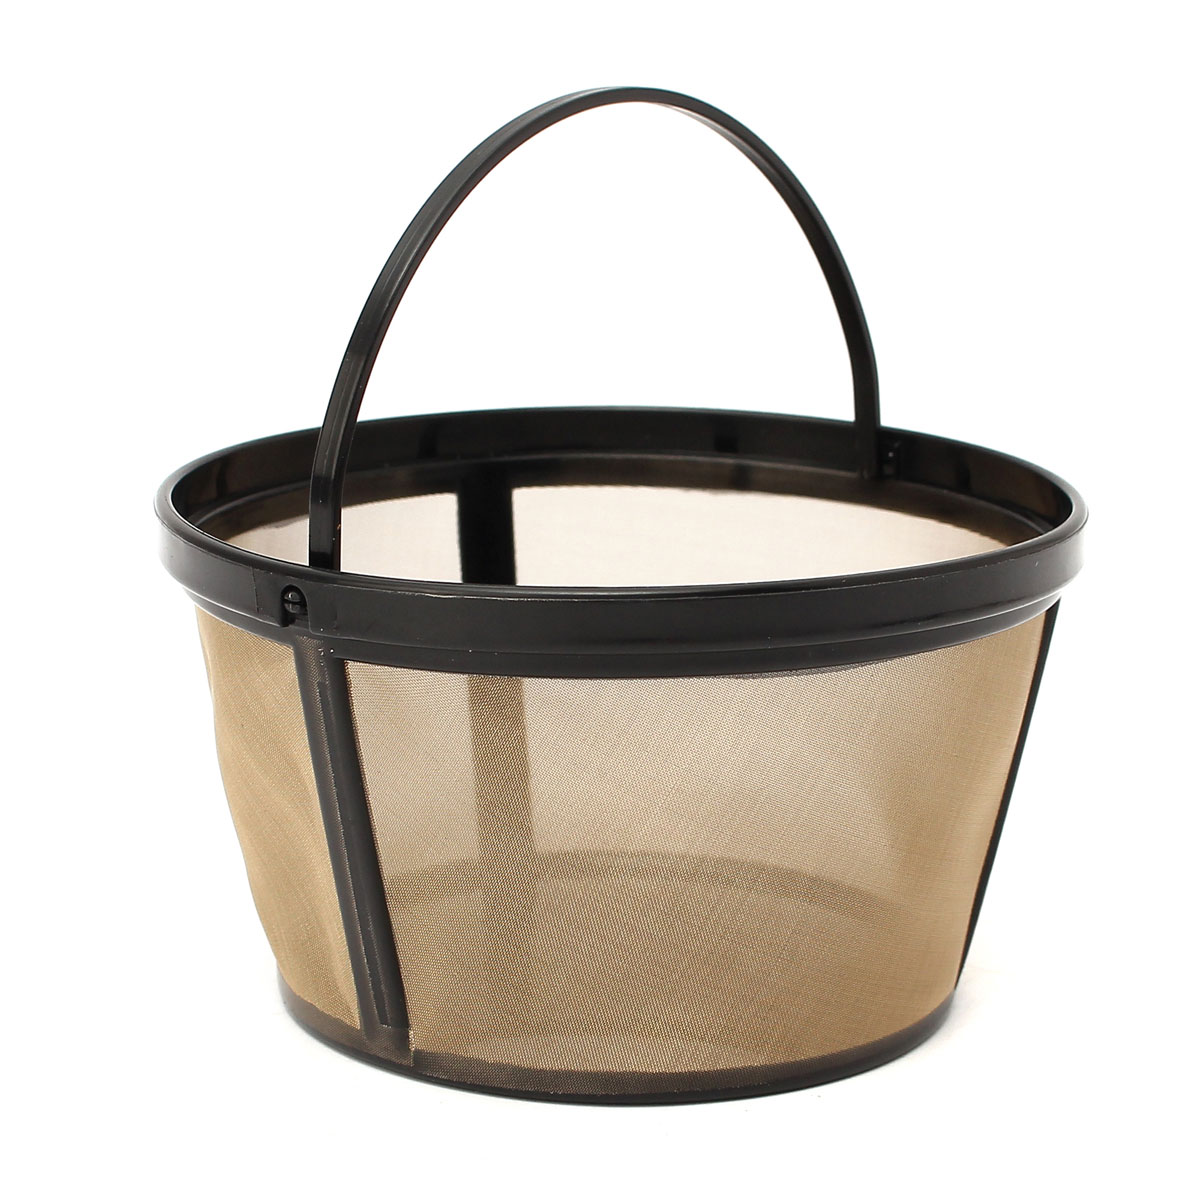 Reusable Gold Coffee Filter Basket for 10-12 Cup Coffee Maker Making Machine Alex NLD